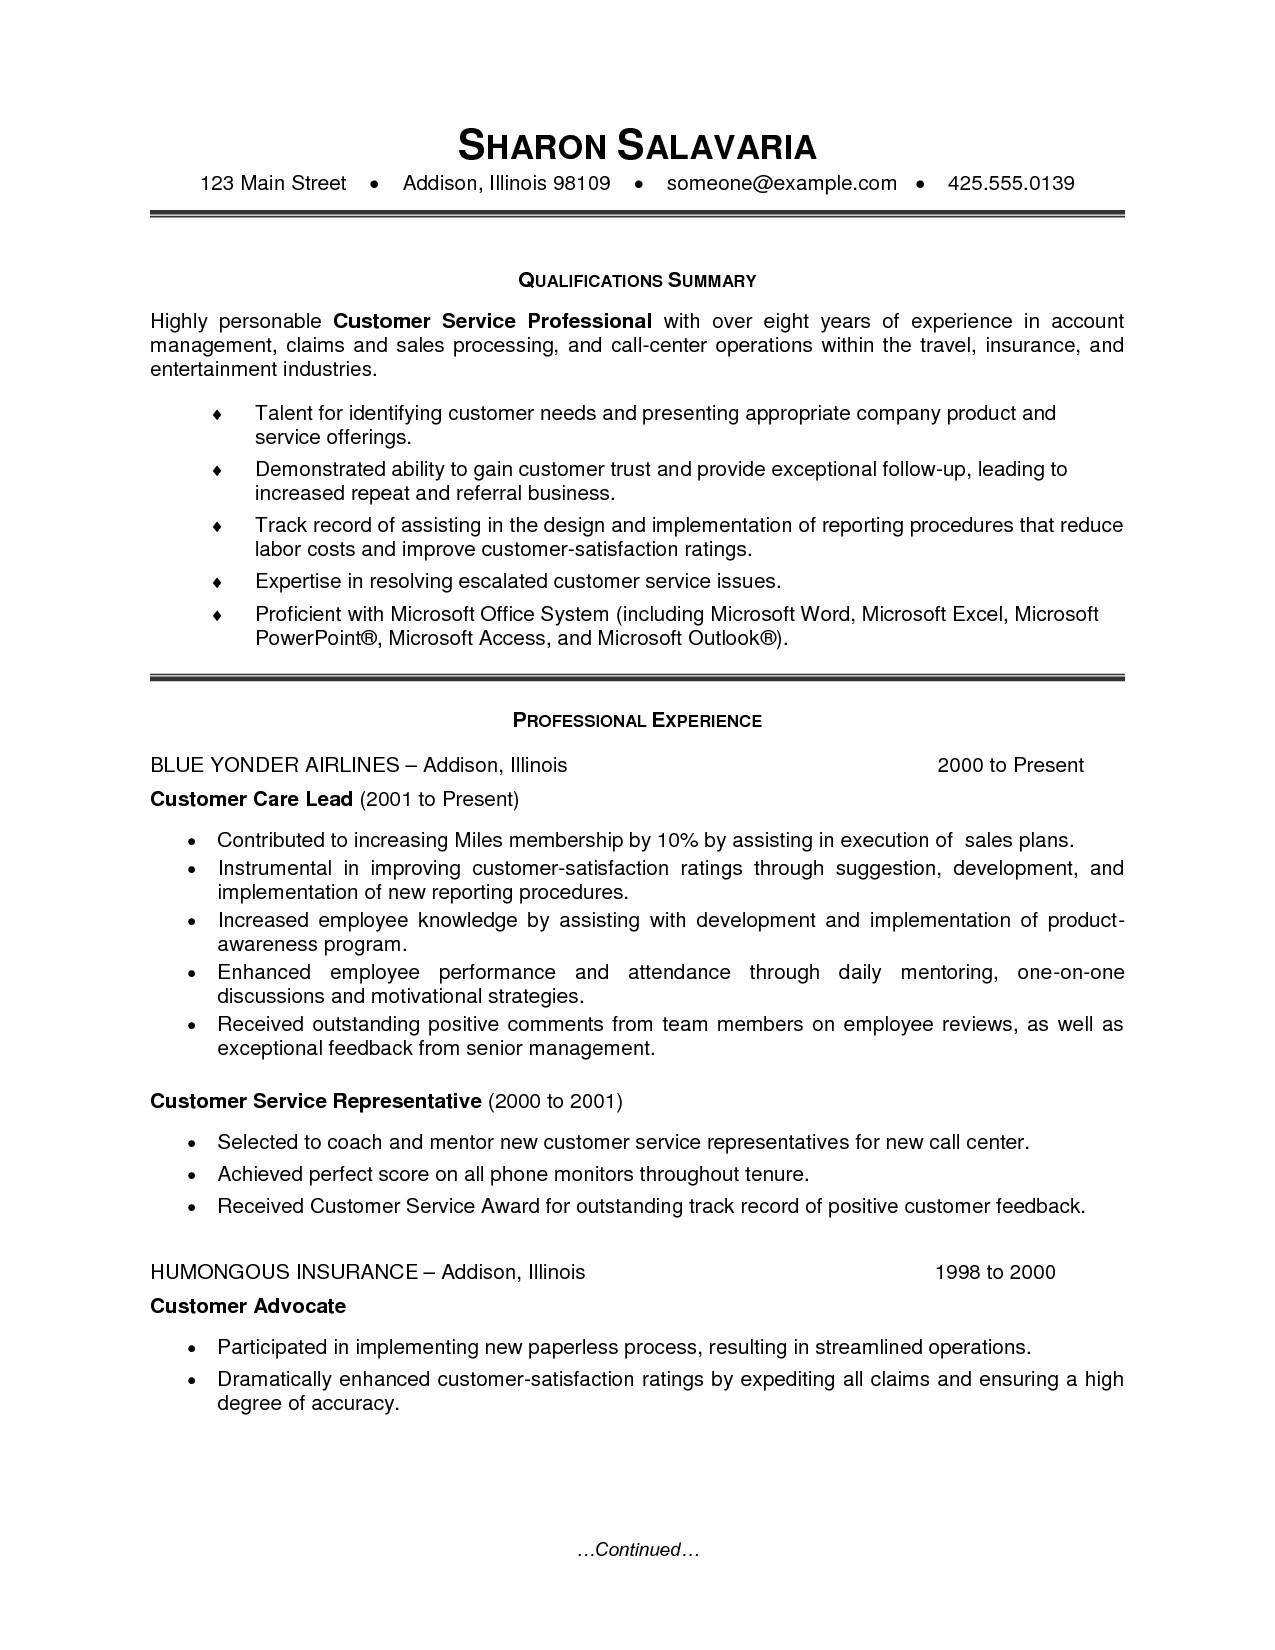 What is A Professional Summary On A Resume - Professional Summary Resume Lovely Resume Summary Examples for It